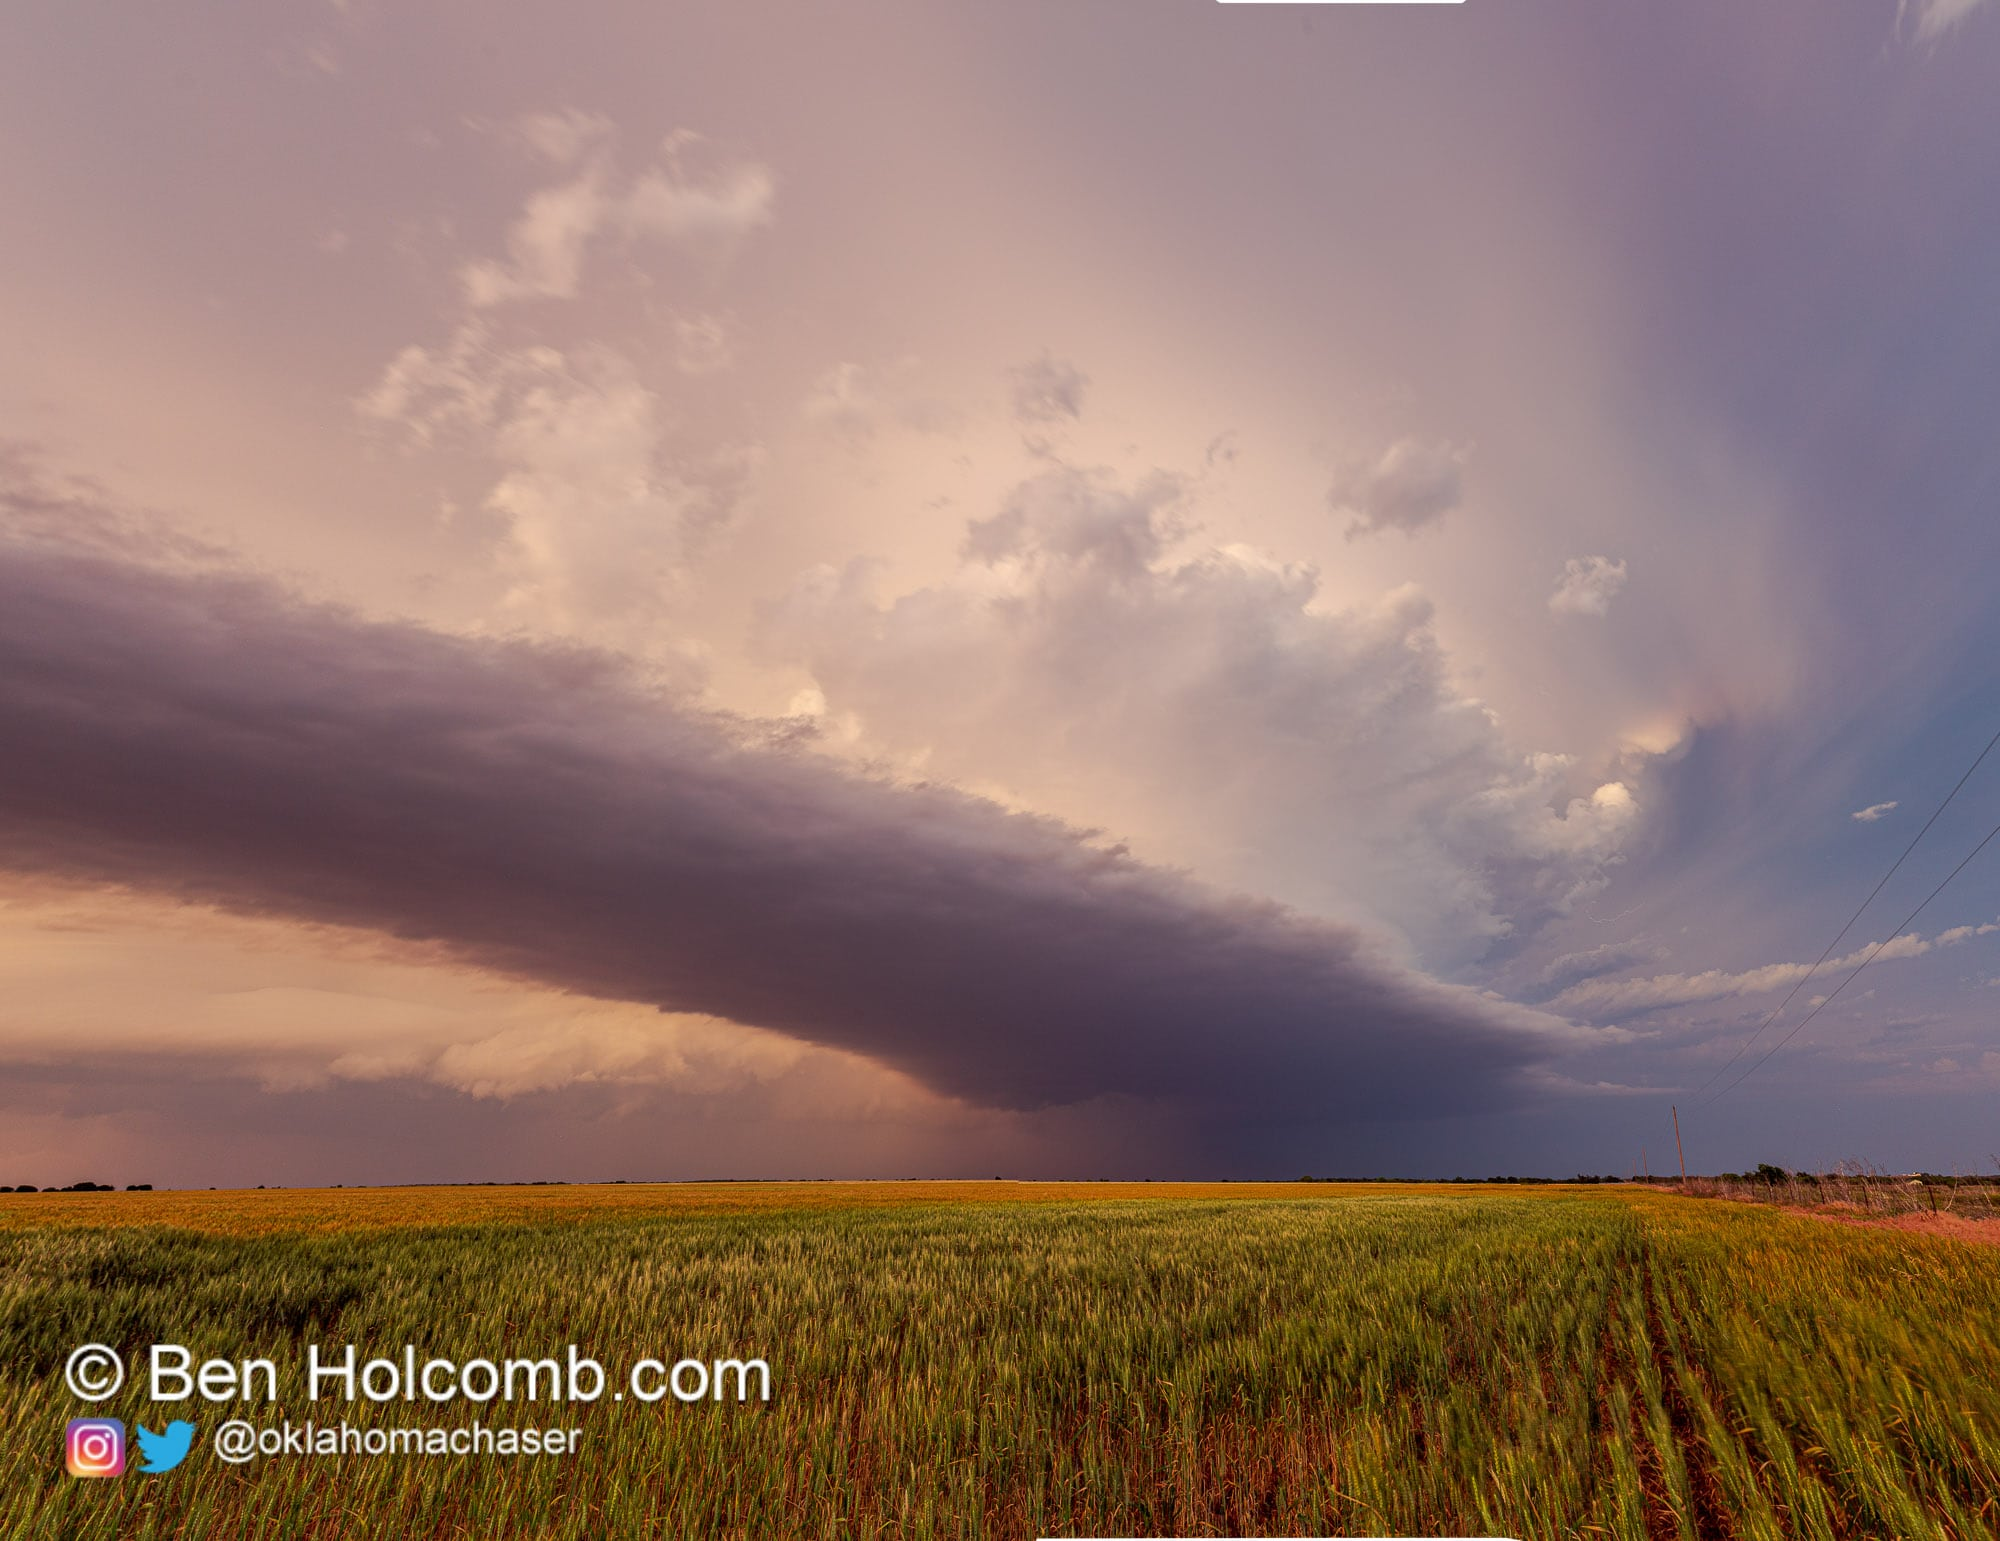 A lone supercell rolls across the Texas countryside near dusk